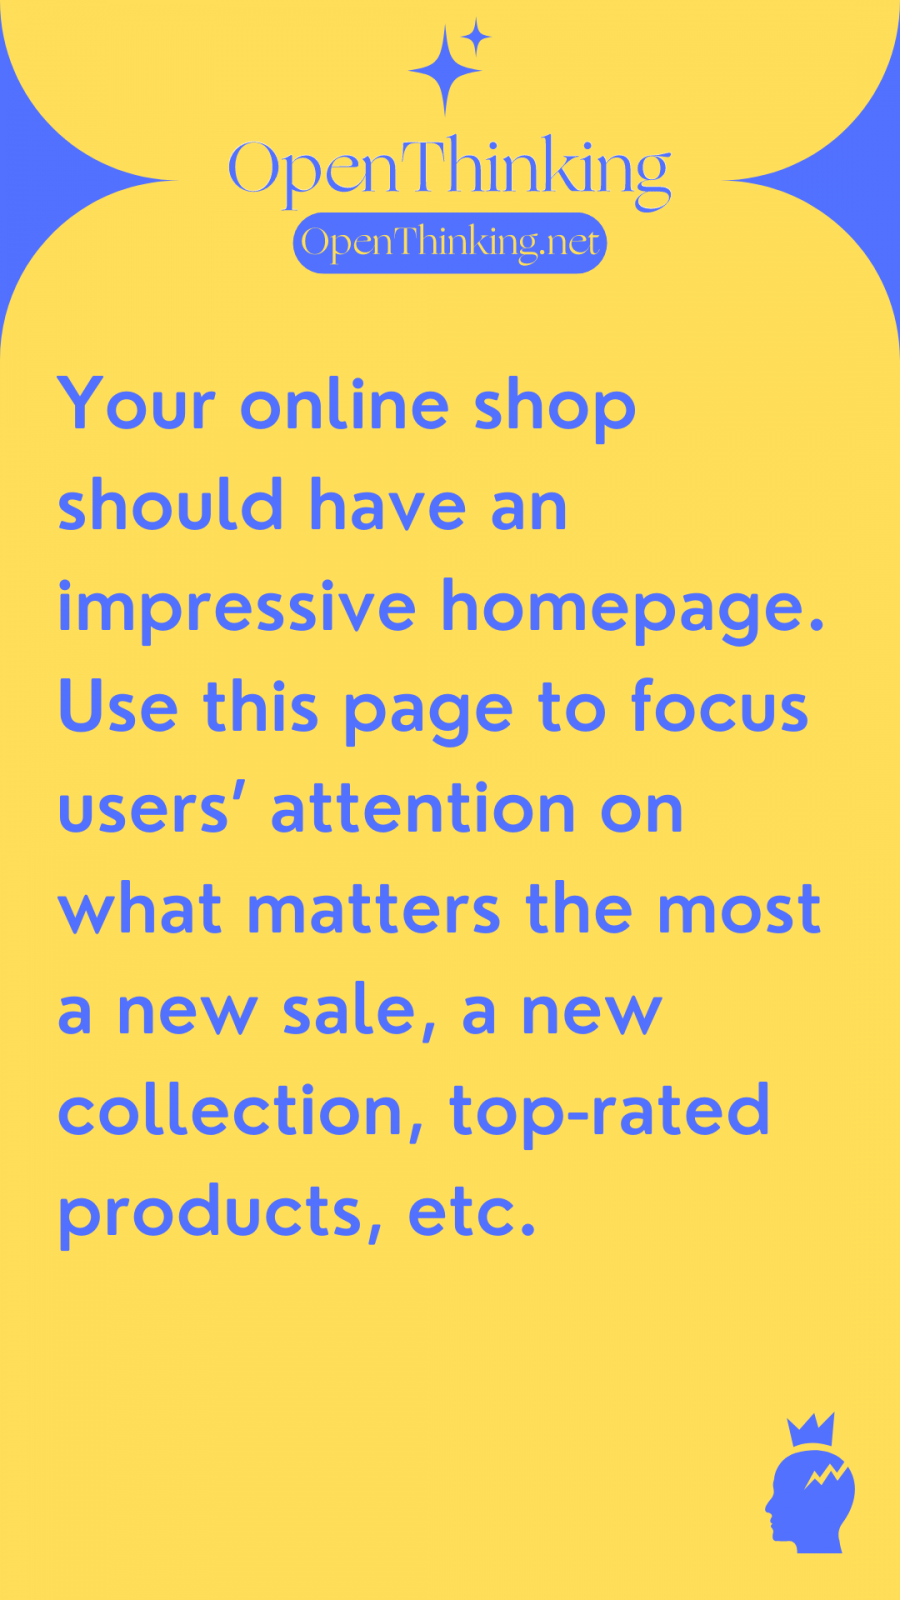 Shopify eCommerce guide homepage